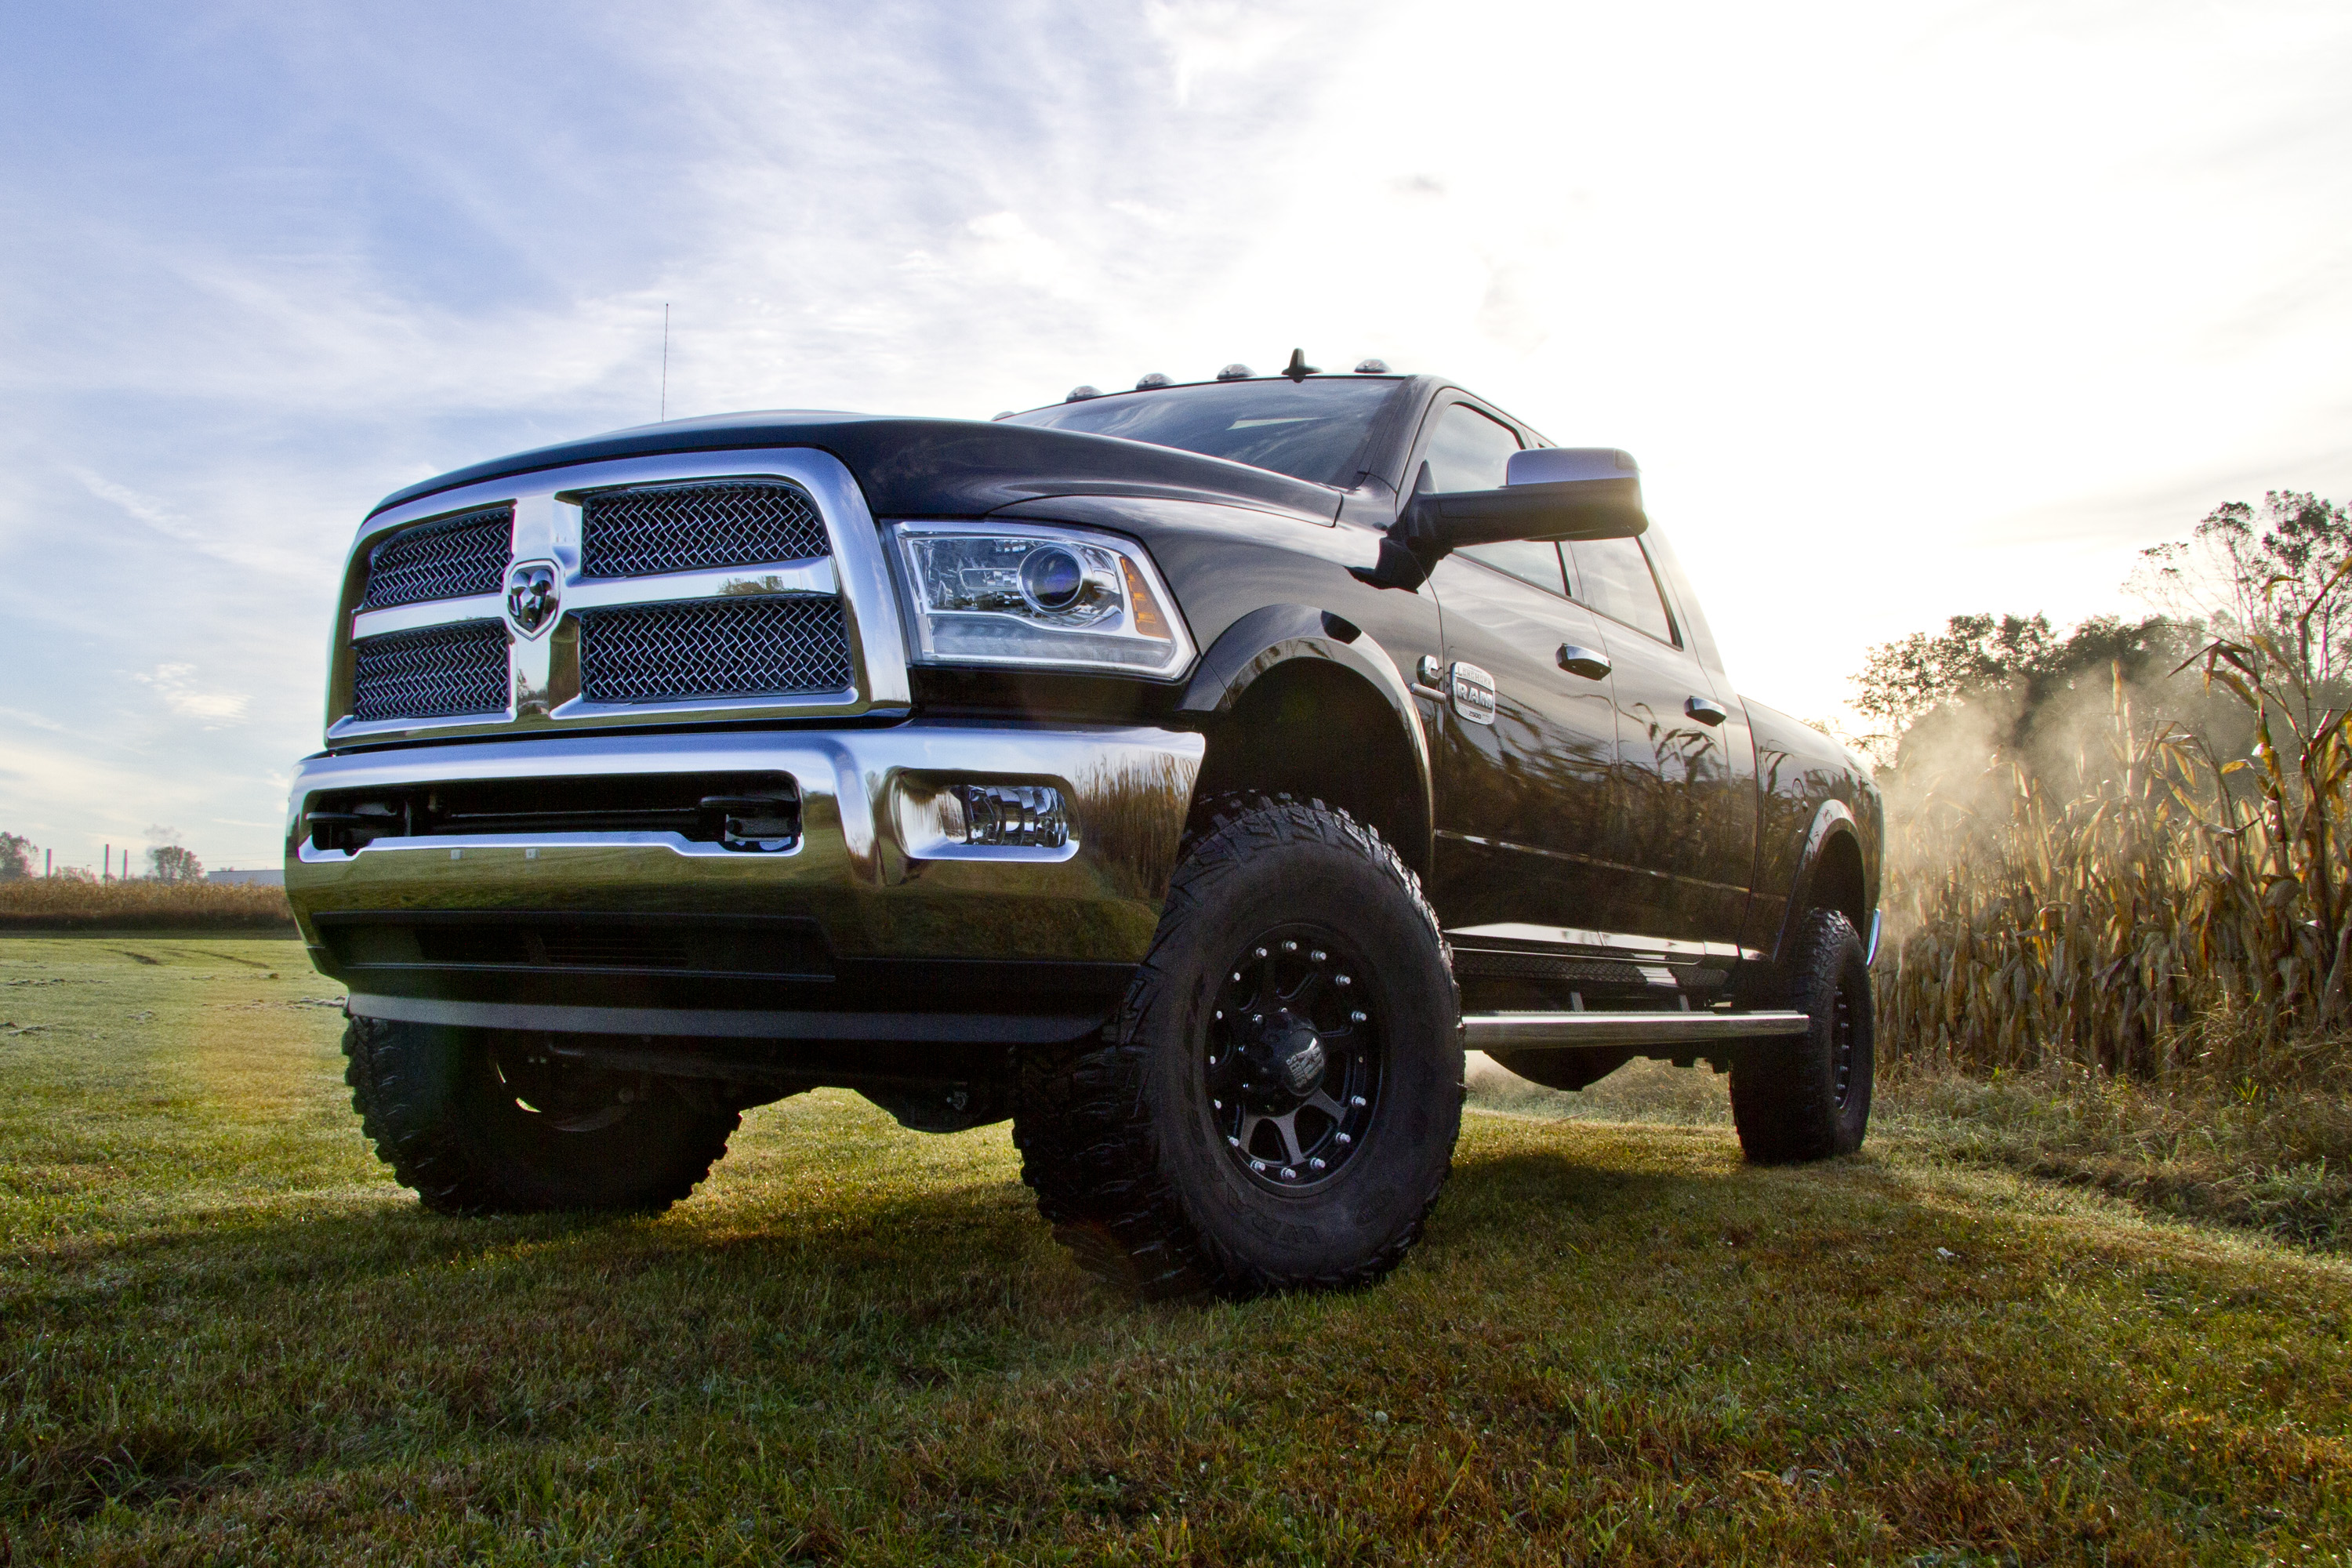 support files links - Dodge Truck 2015 Lifted